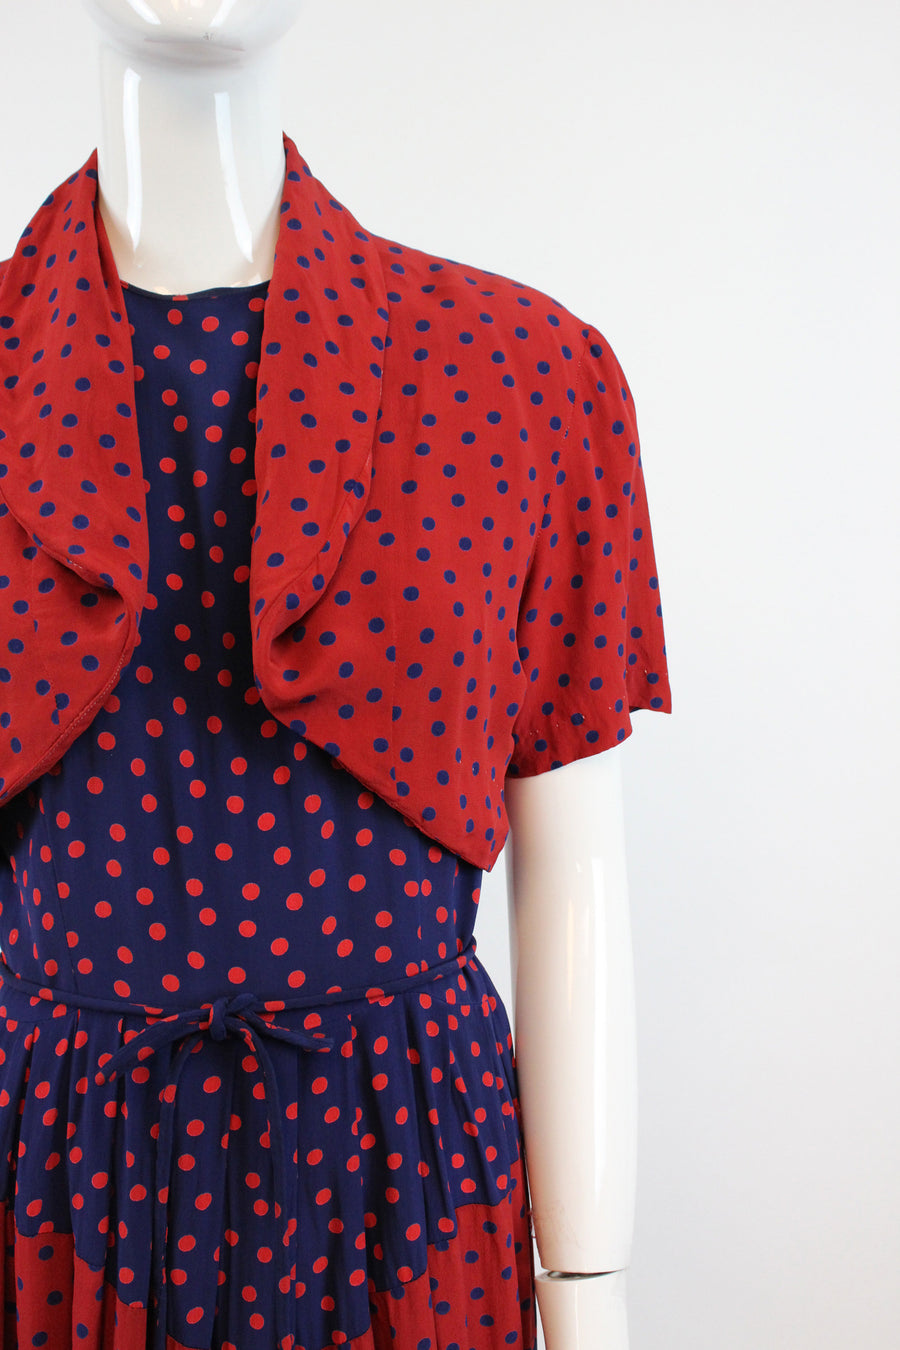 1940s cold rayon dress two piece set small | vintage dress with bolero polka dots and stripes